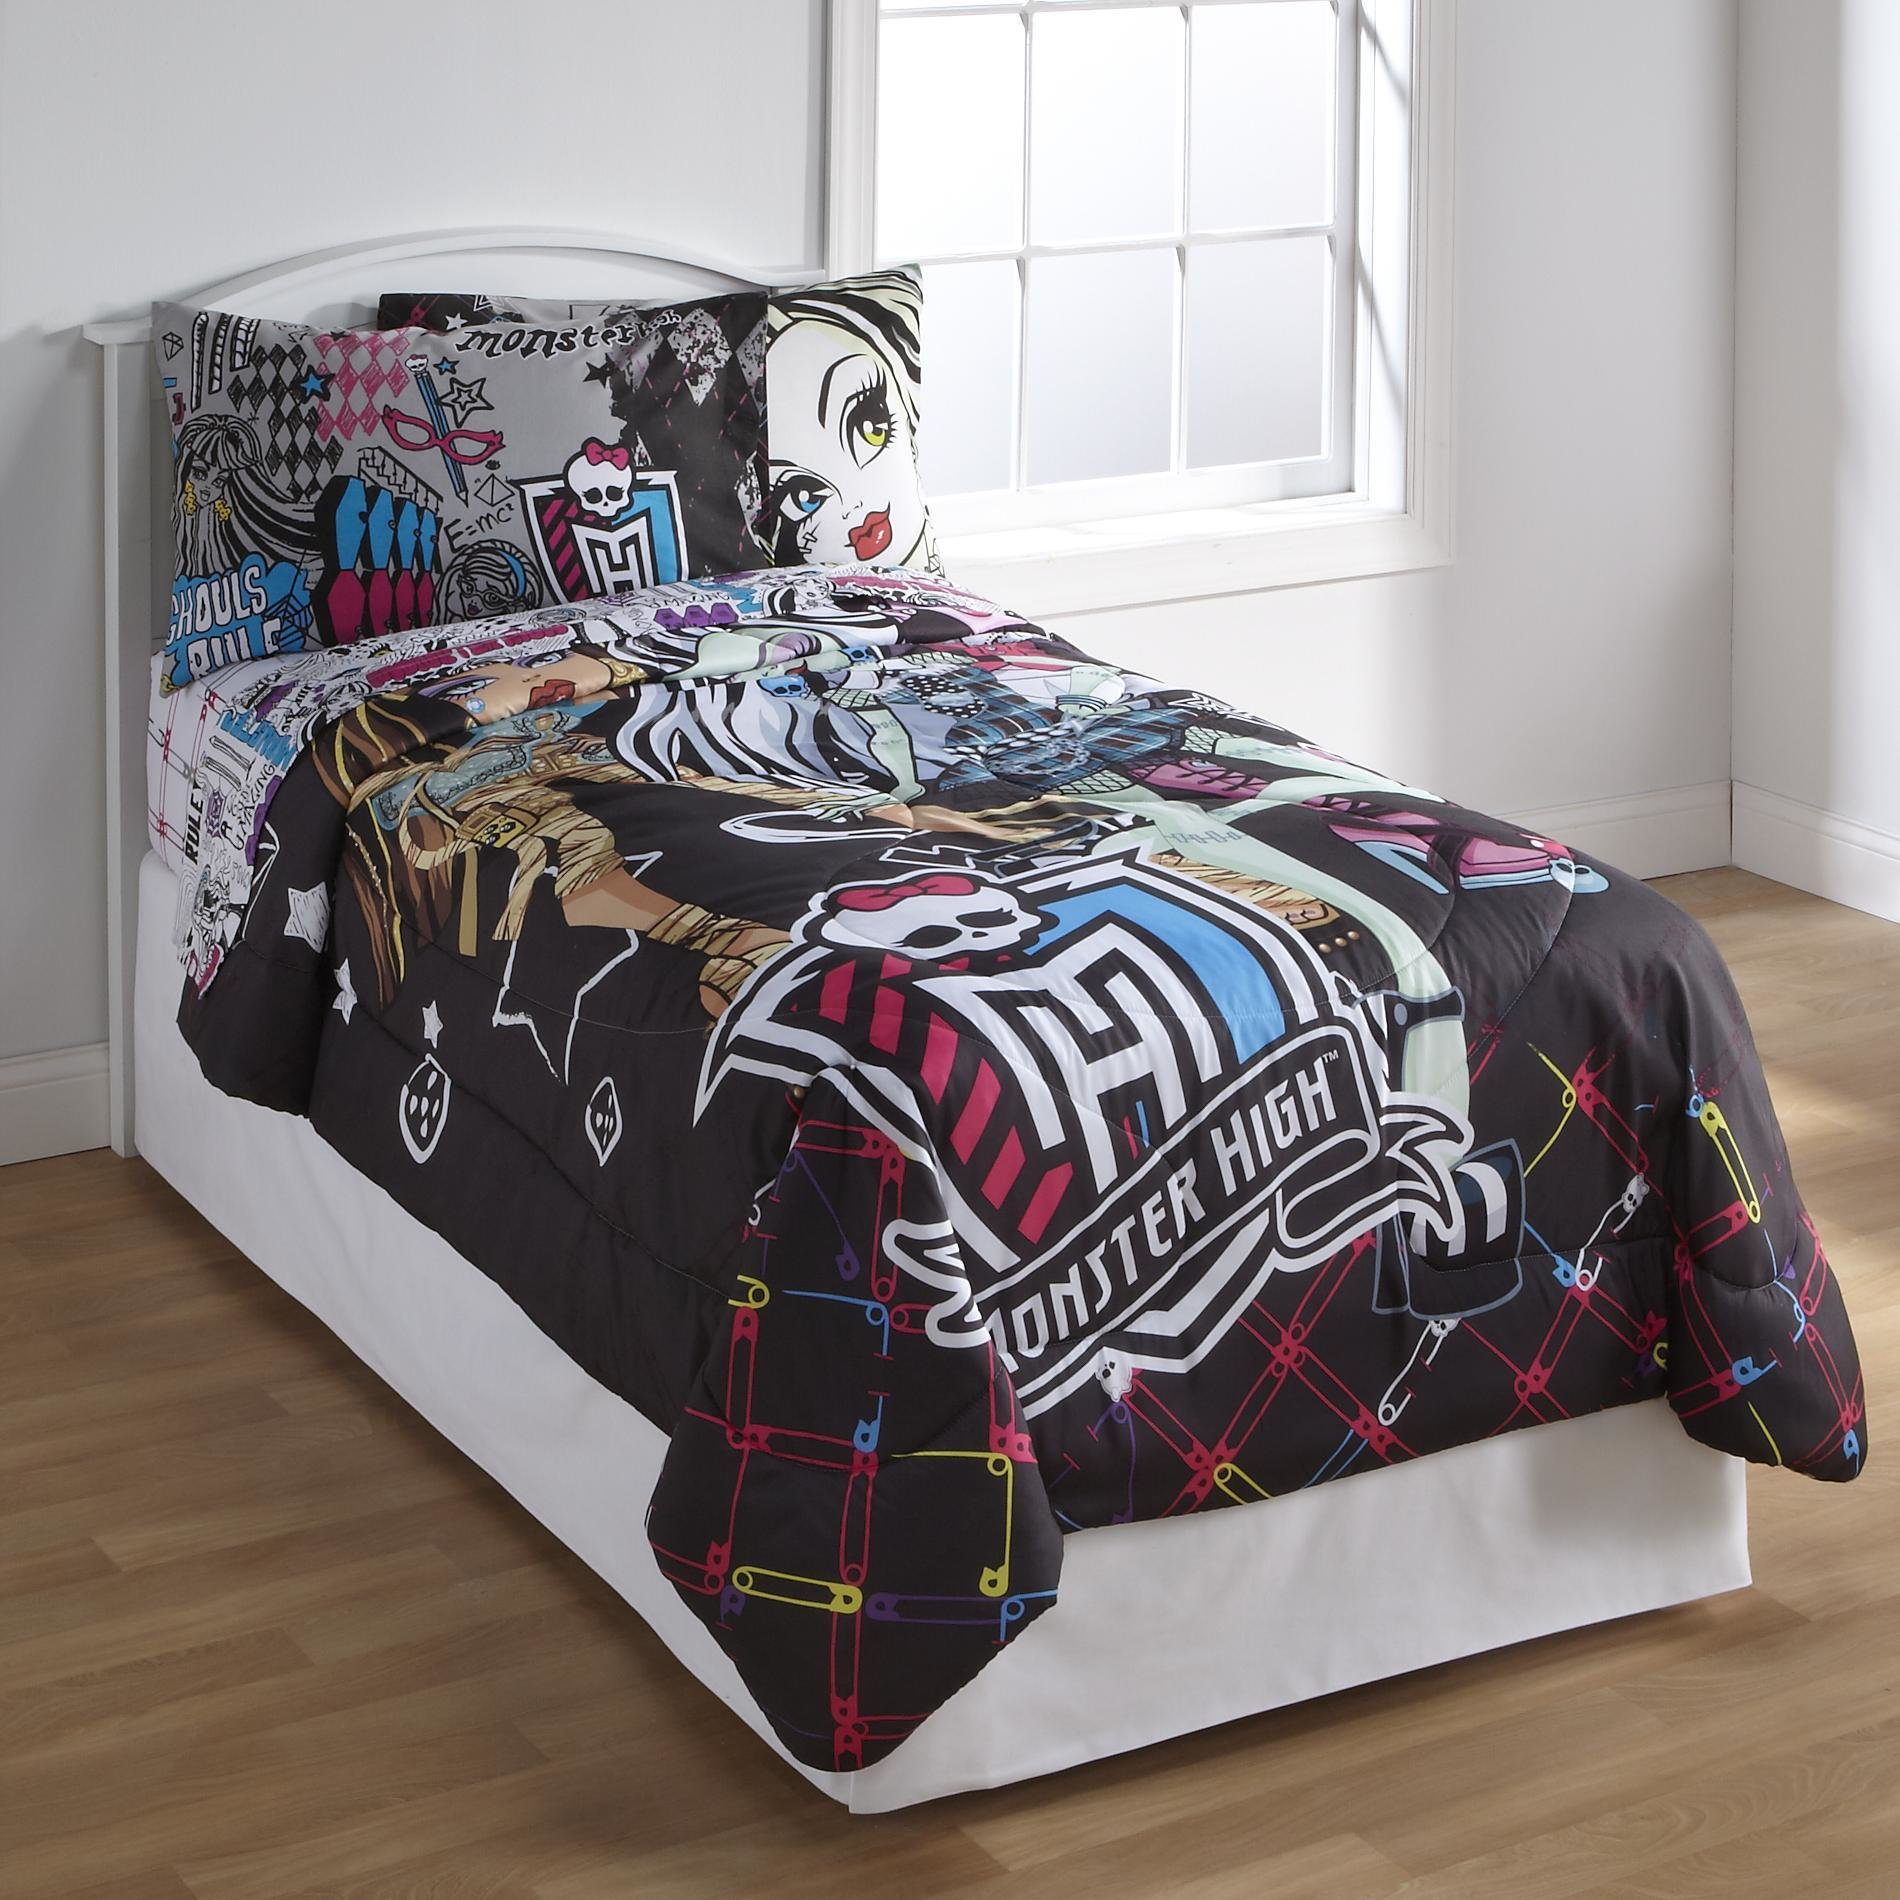 Best Monster High Bedding And Bedroom Decor With Pictures